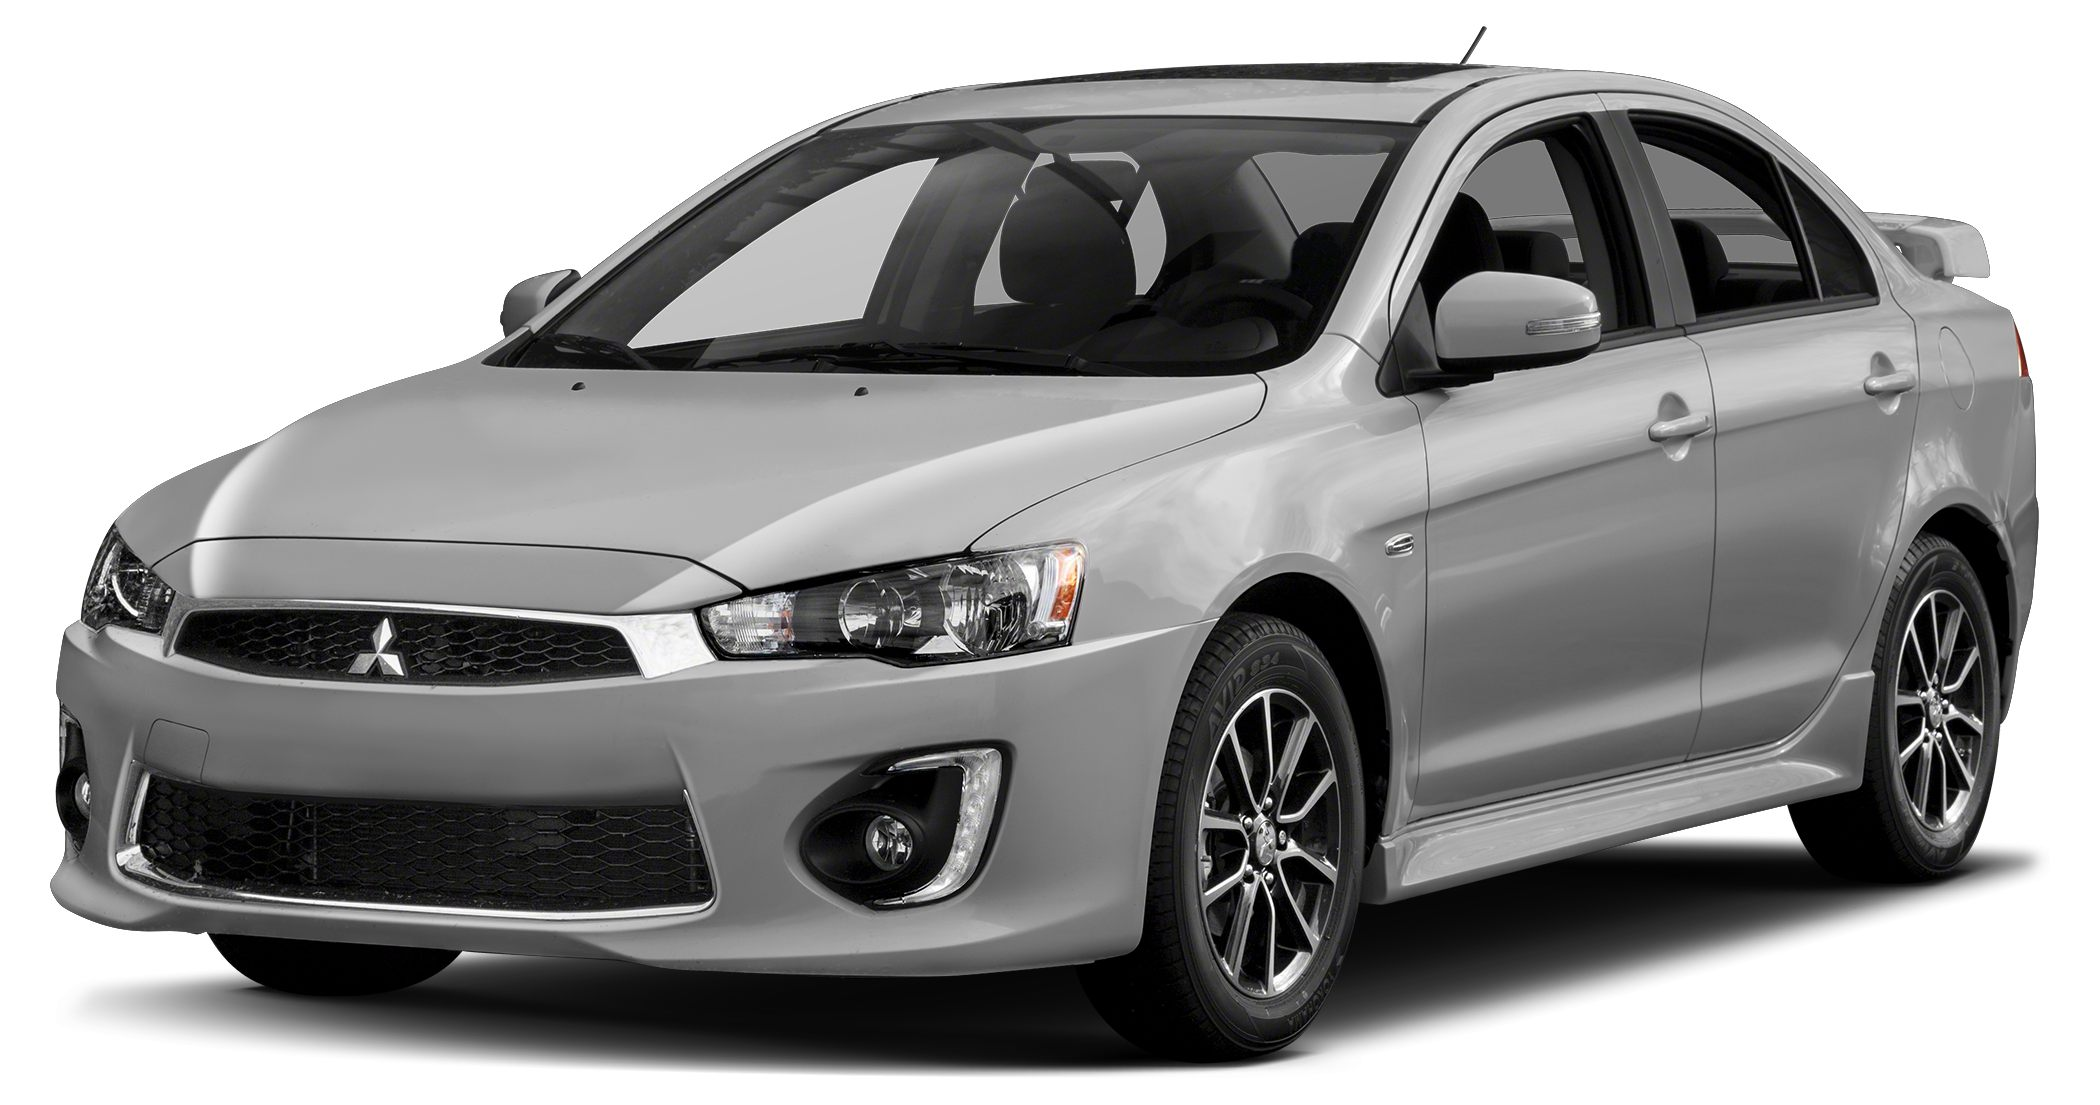 2016 Mitsubishi Lancer ES The Mitsubishi Lancer is a unique sedan that is a great value with an im